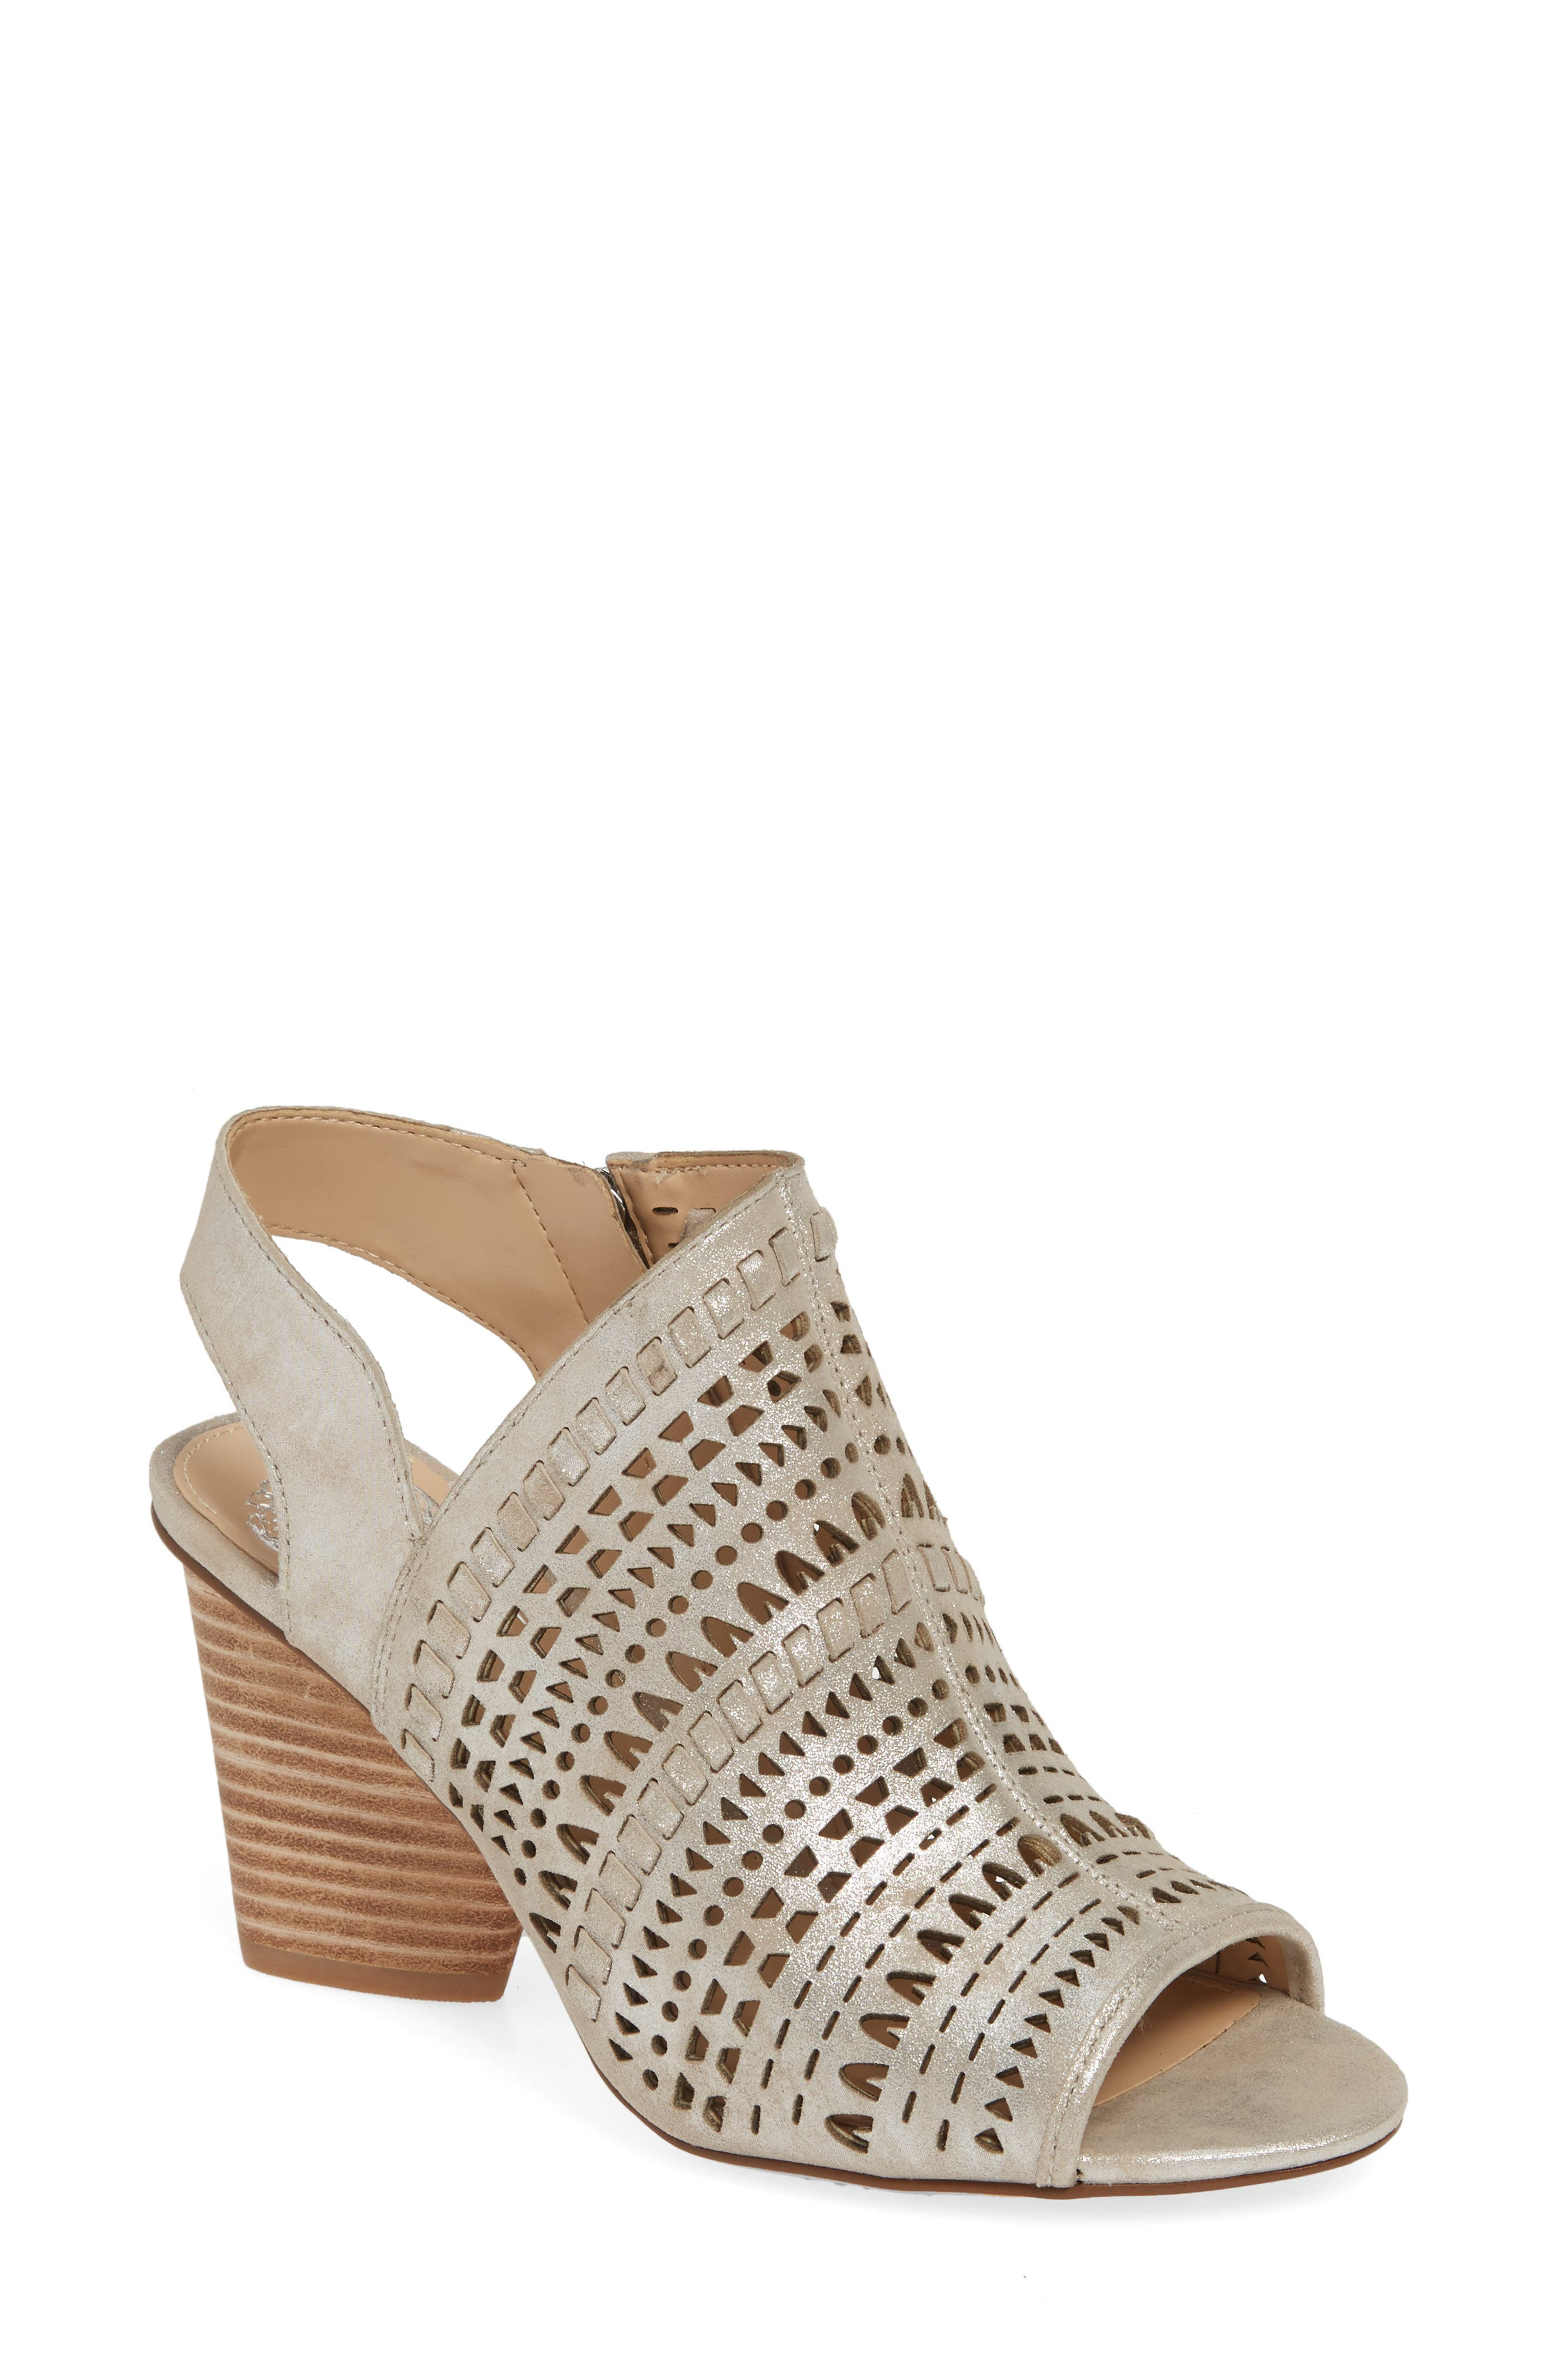 Vince Camuto Derechie Perforated Shield Sandal, Metallic